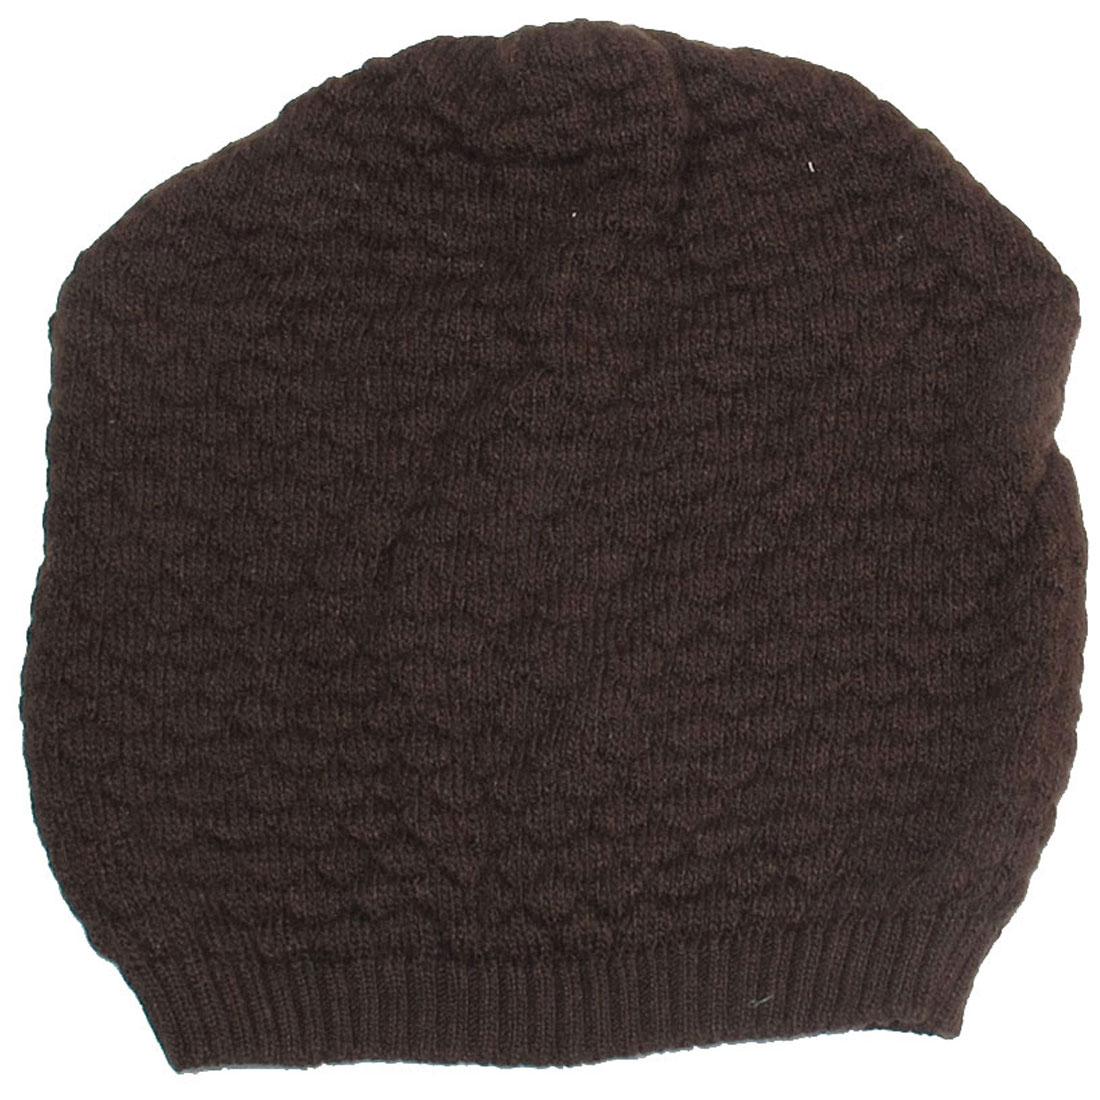 Womens Brown Fish Scales Texture Winter Warm Knit Beanie Hats